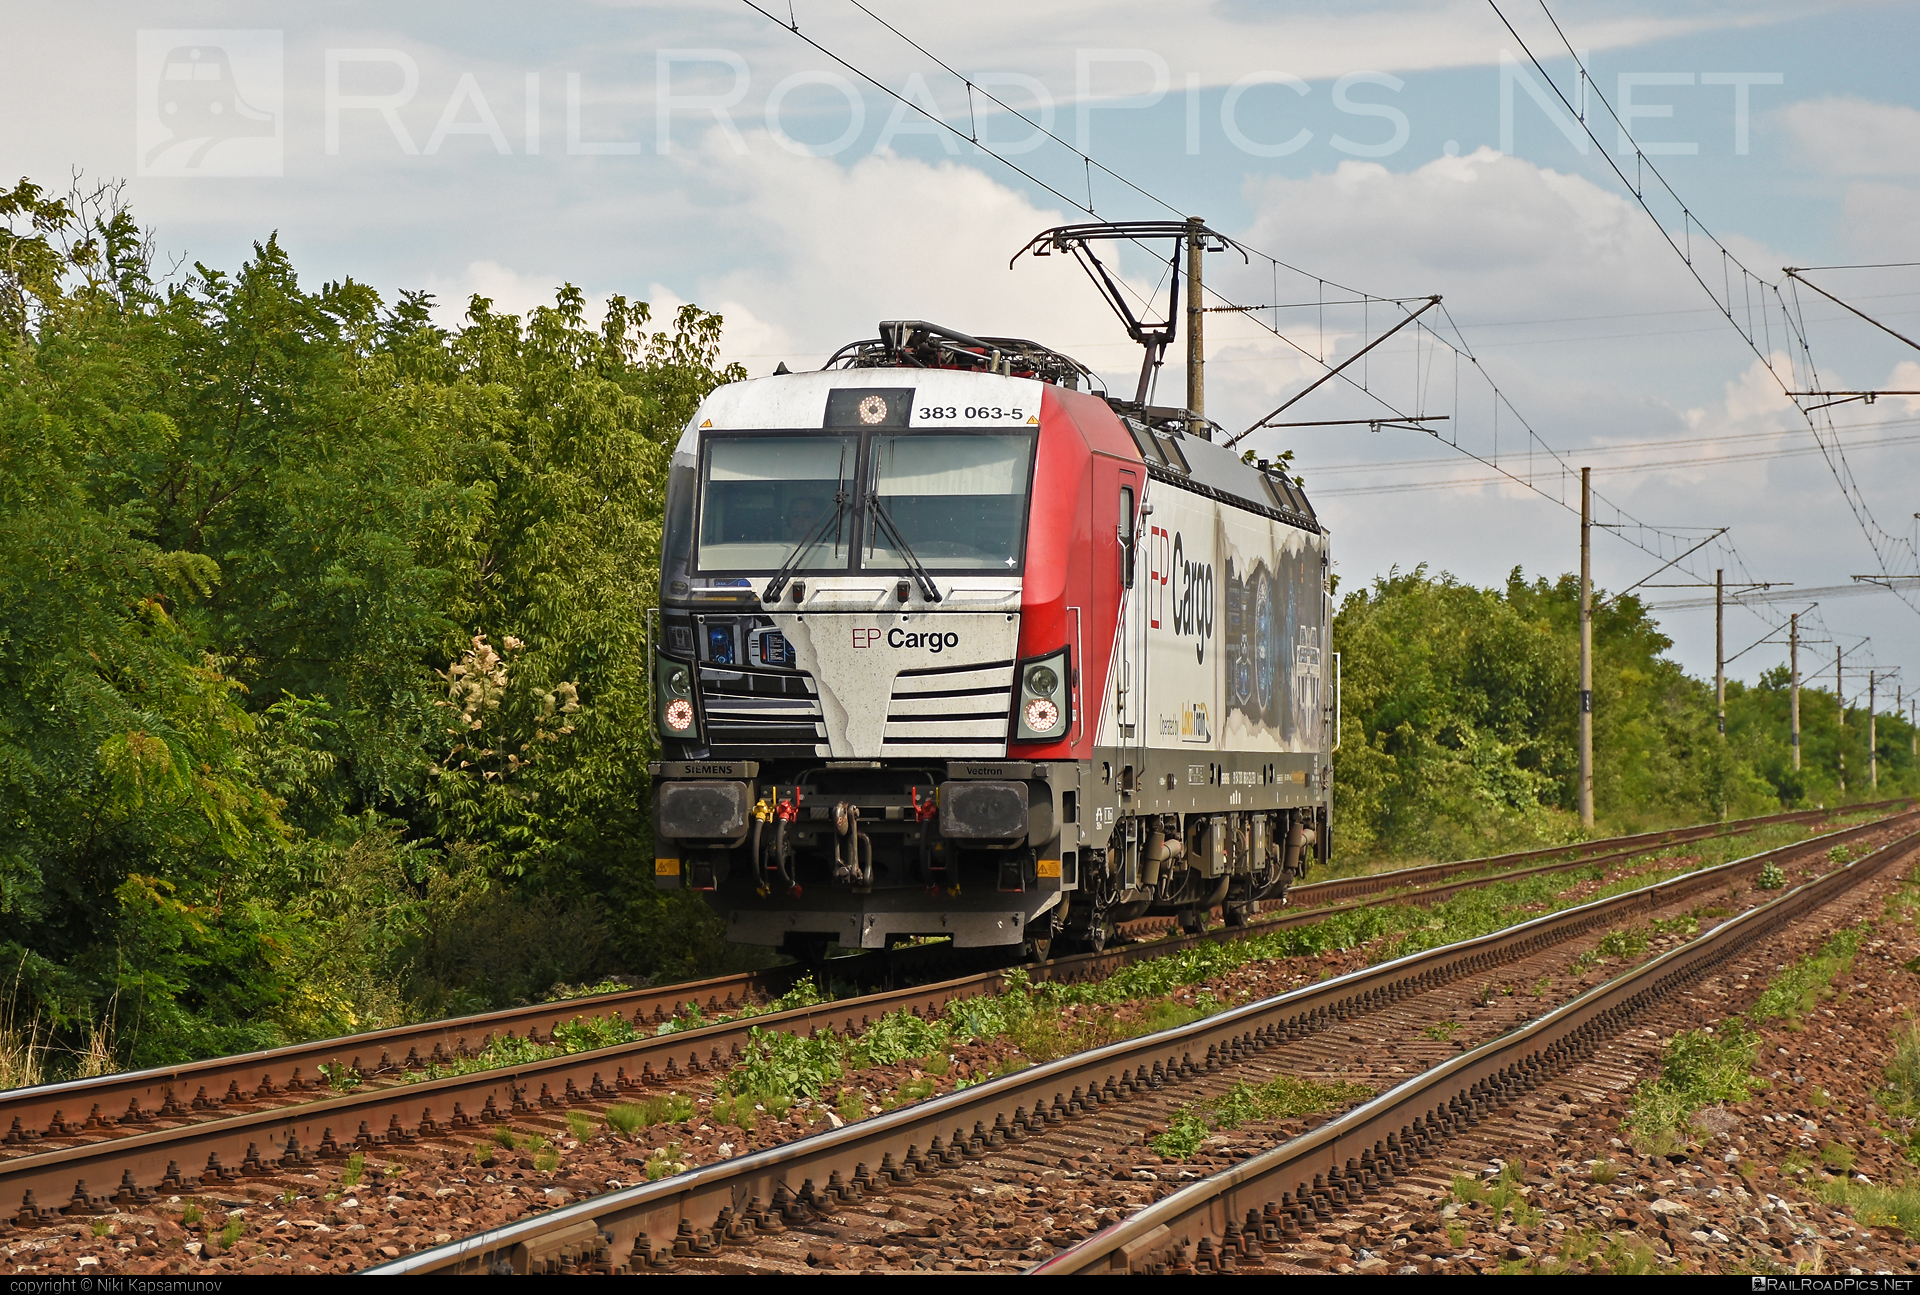 Siemens Vectron MS - 383 063-5 operated by Loko Train s.r.o. #epcargo #lokotrain #lokotrainsro #siemens #siemensvectron #siemensvectronms #vectron #vectronms